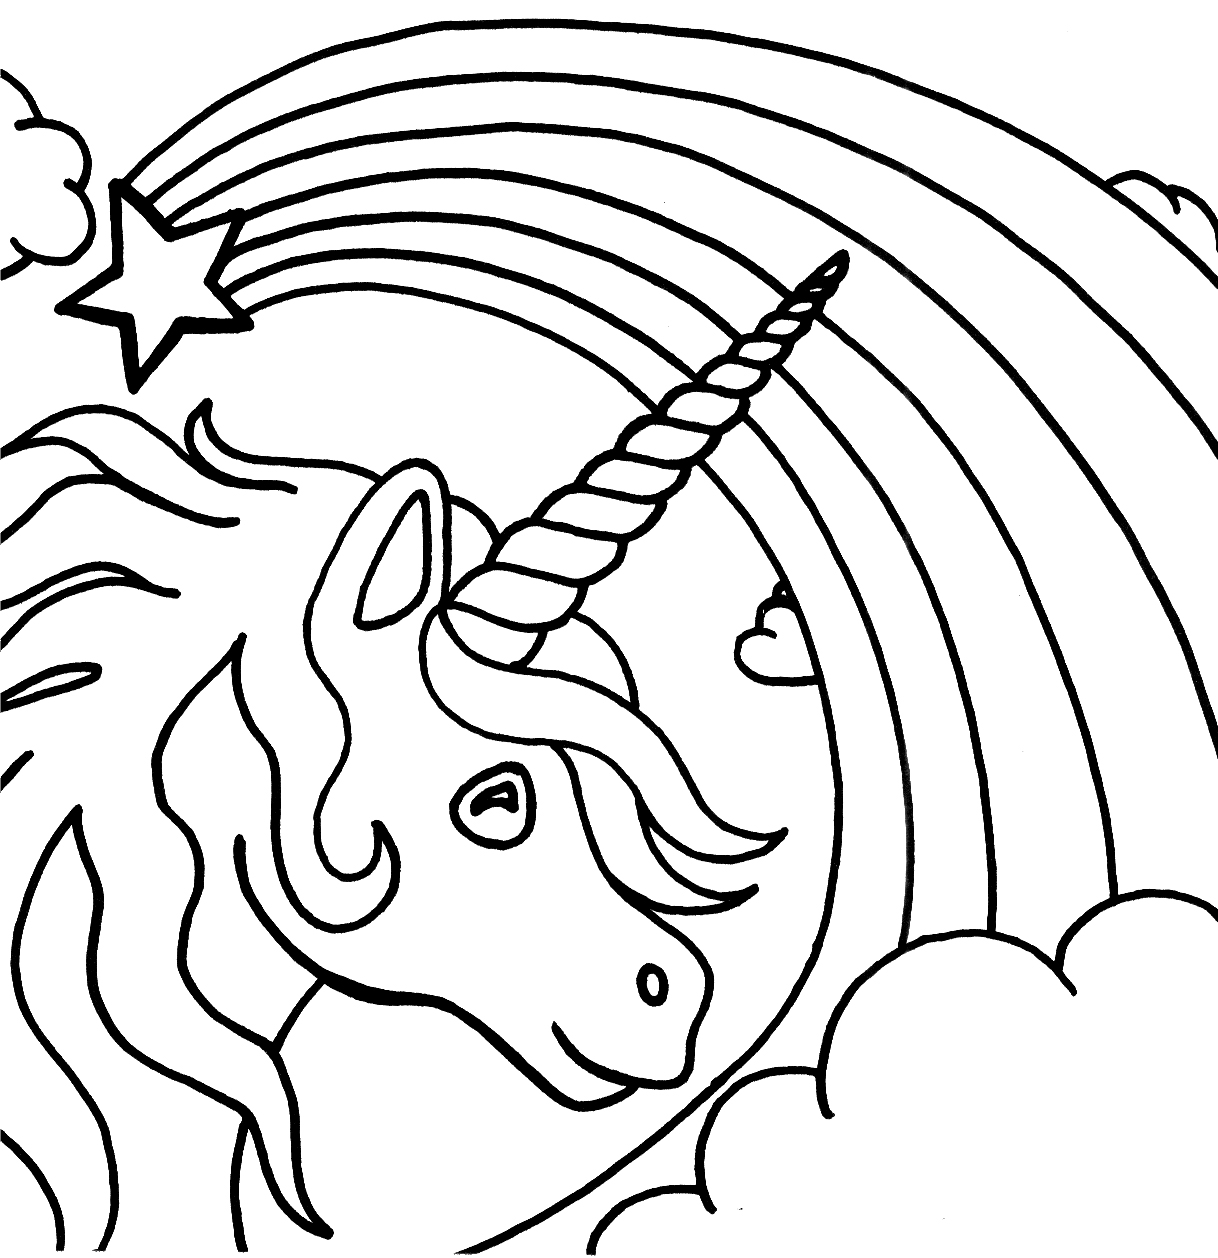 Unicorn_Rainbow_Coloring_Pages_01